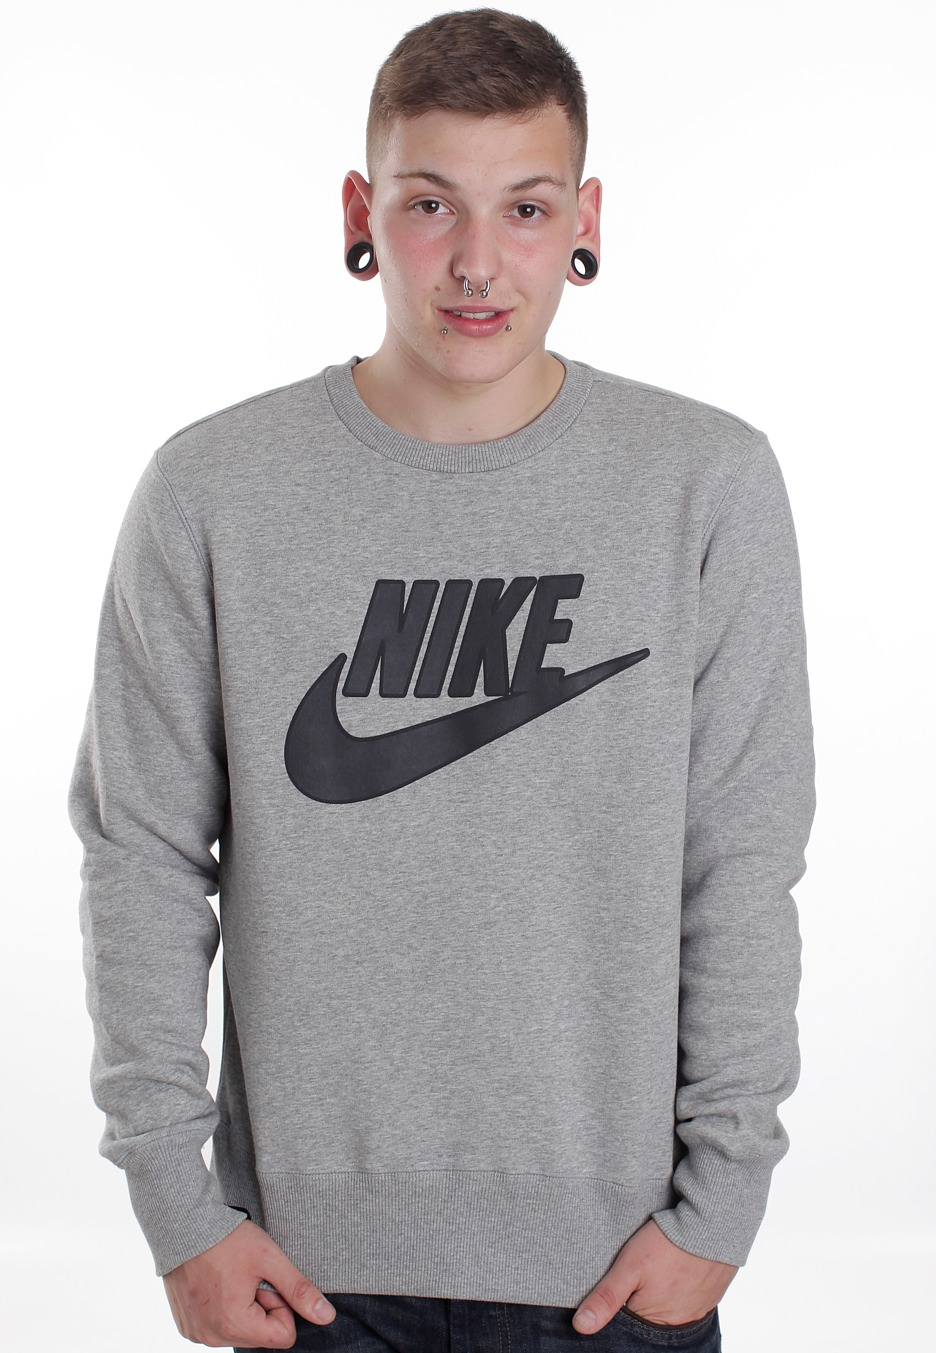 Nike - Brushed Dark Grey Heather - Sweater - Streetwear Online Shop - Impericon.com Worldwide